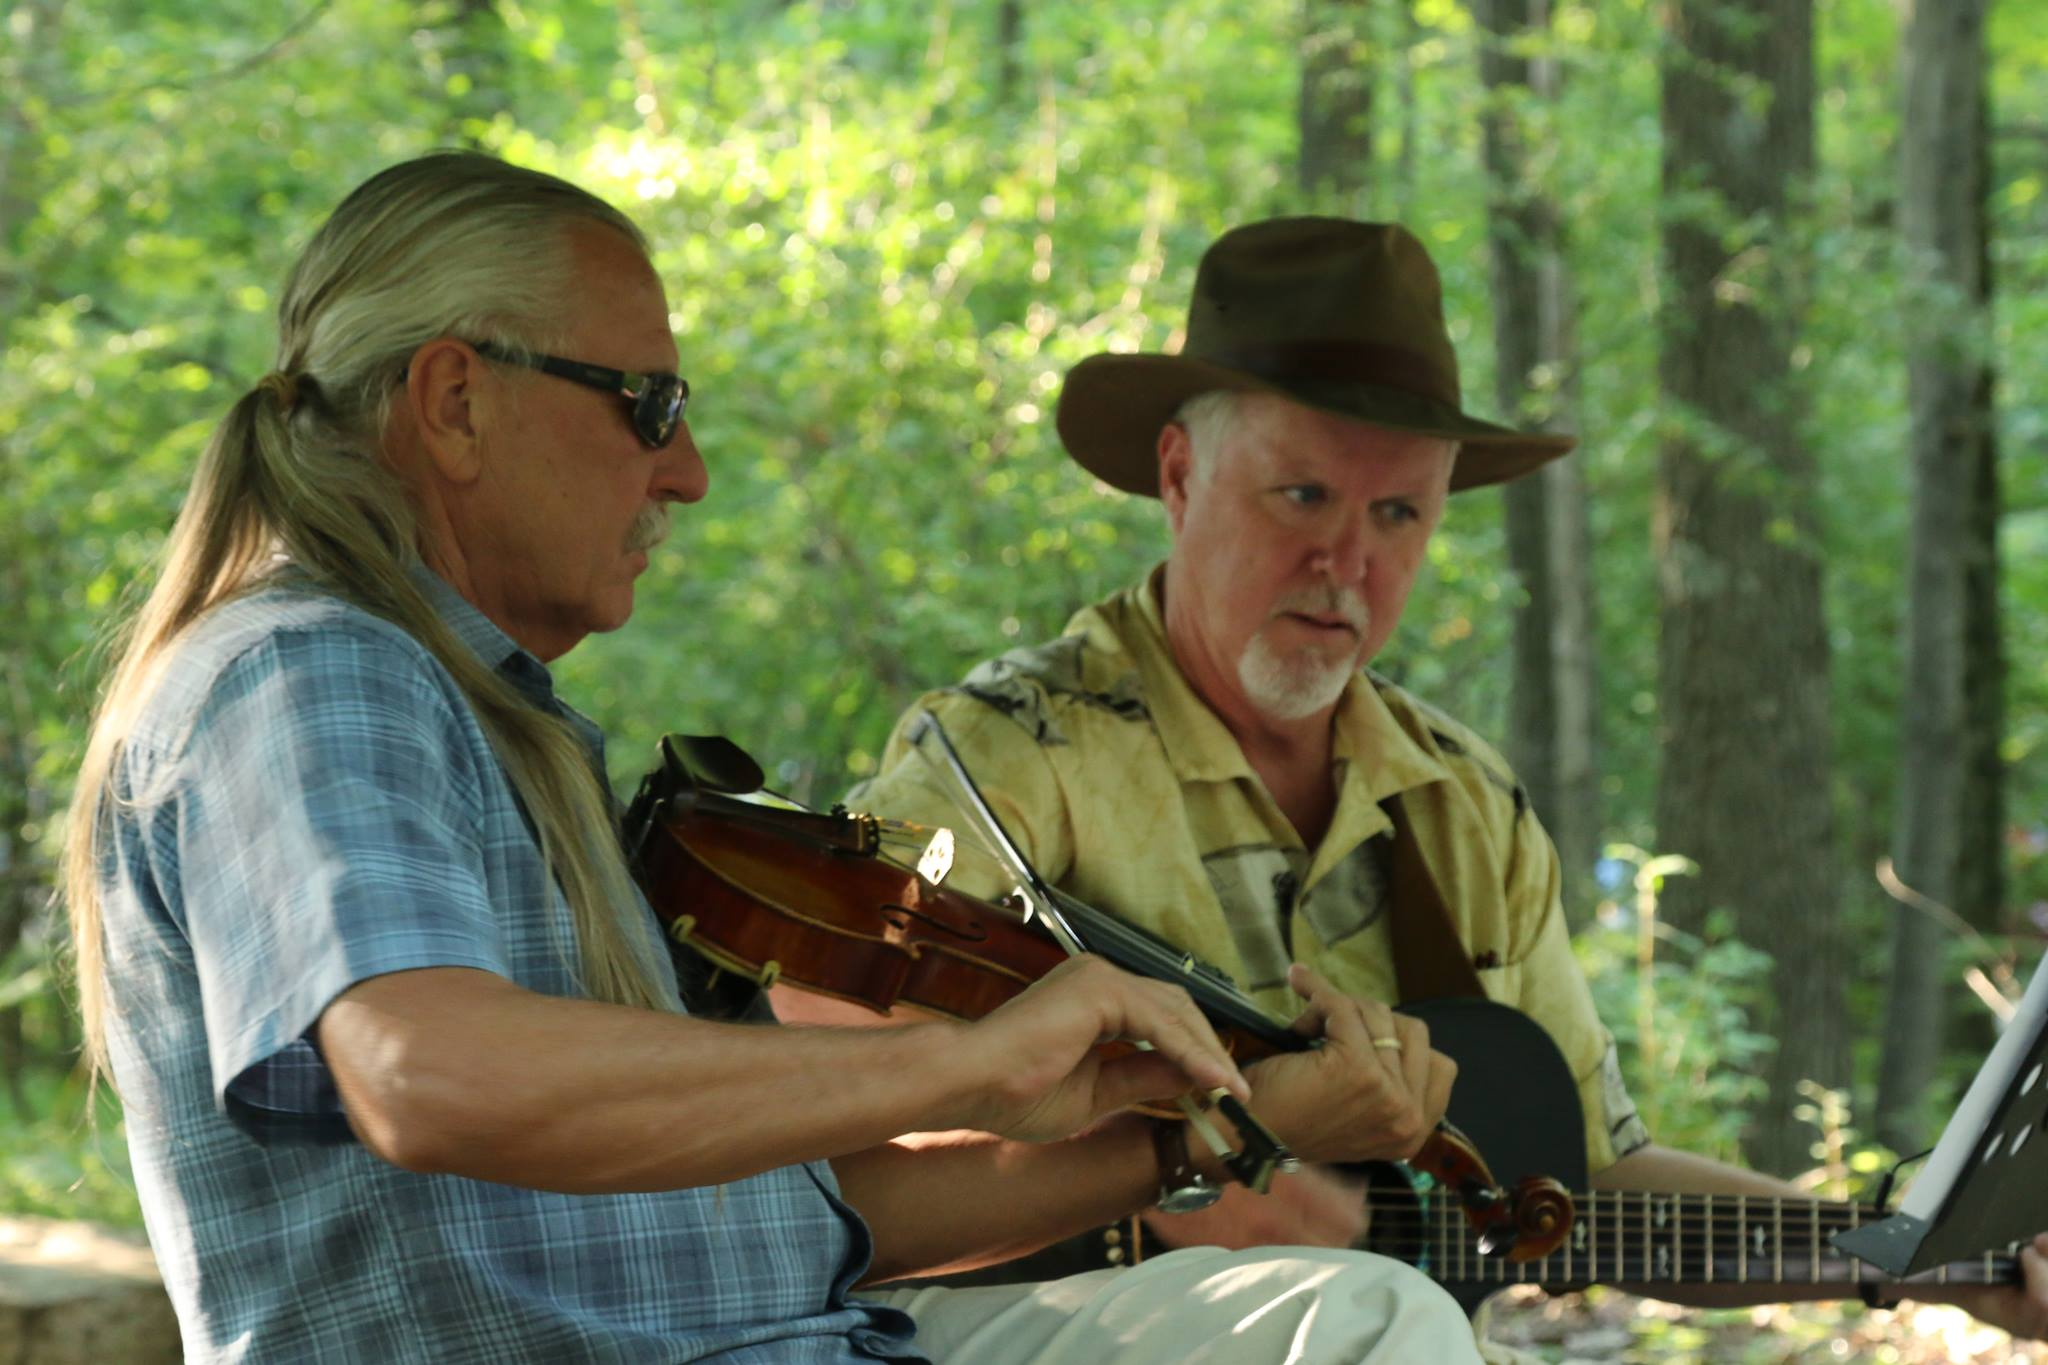 Daniel Bracken and Bruce Gartner perform bluegrass music